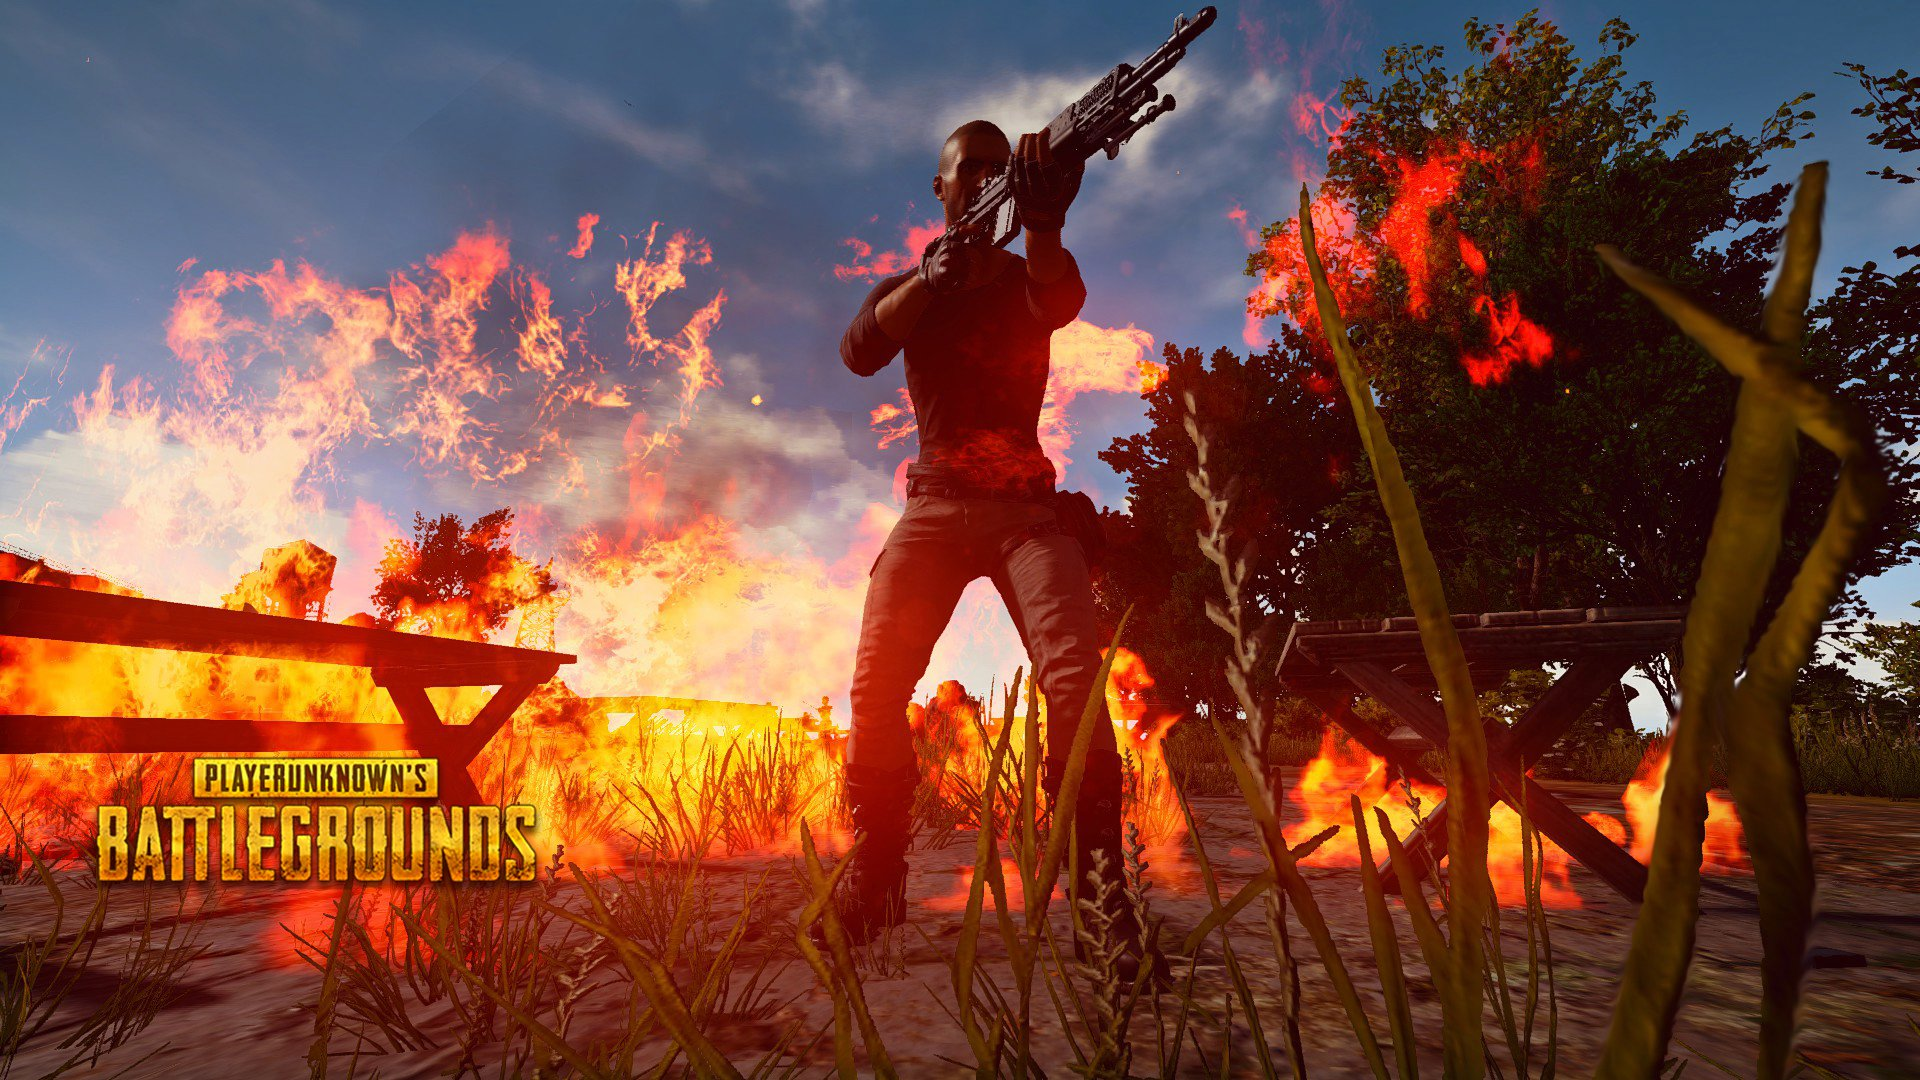 4k Playerunknowns Battlegrounds: Fire Battleground HD Wallpaper